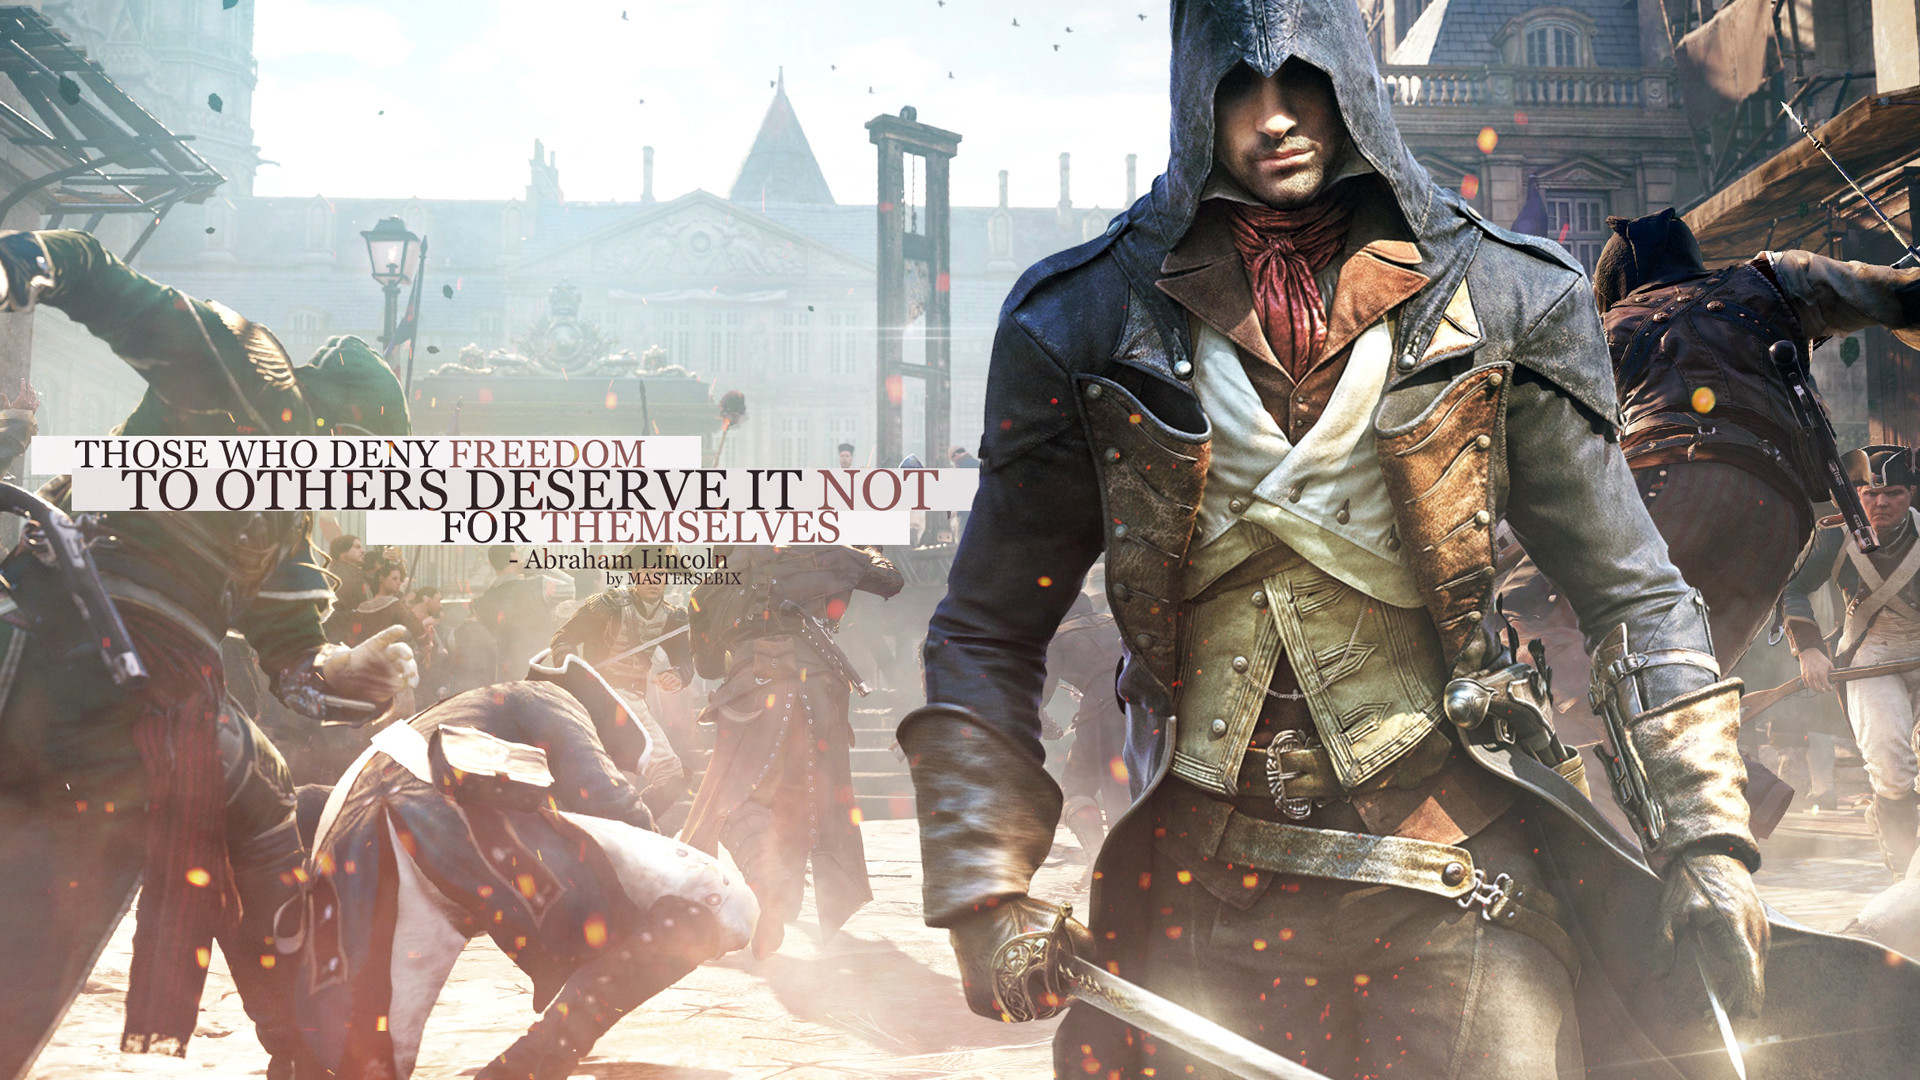 1920x1080 Assassin's Creed Unity Arno Dorian action